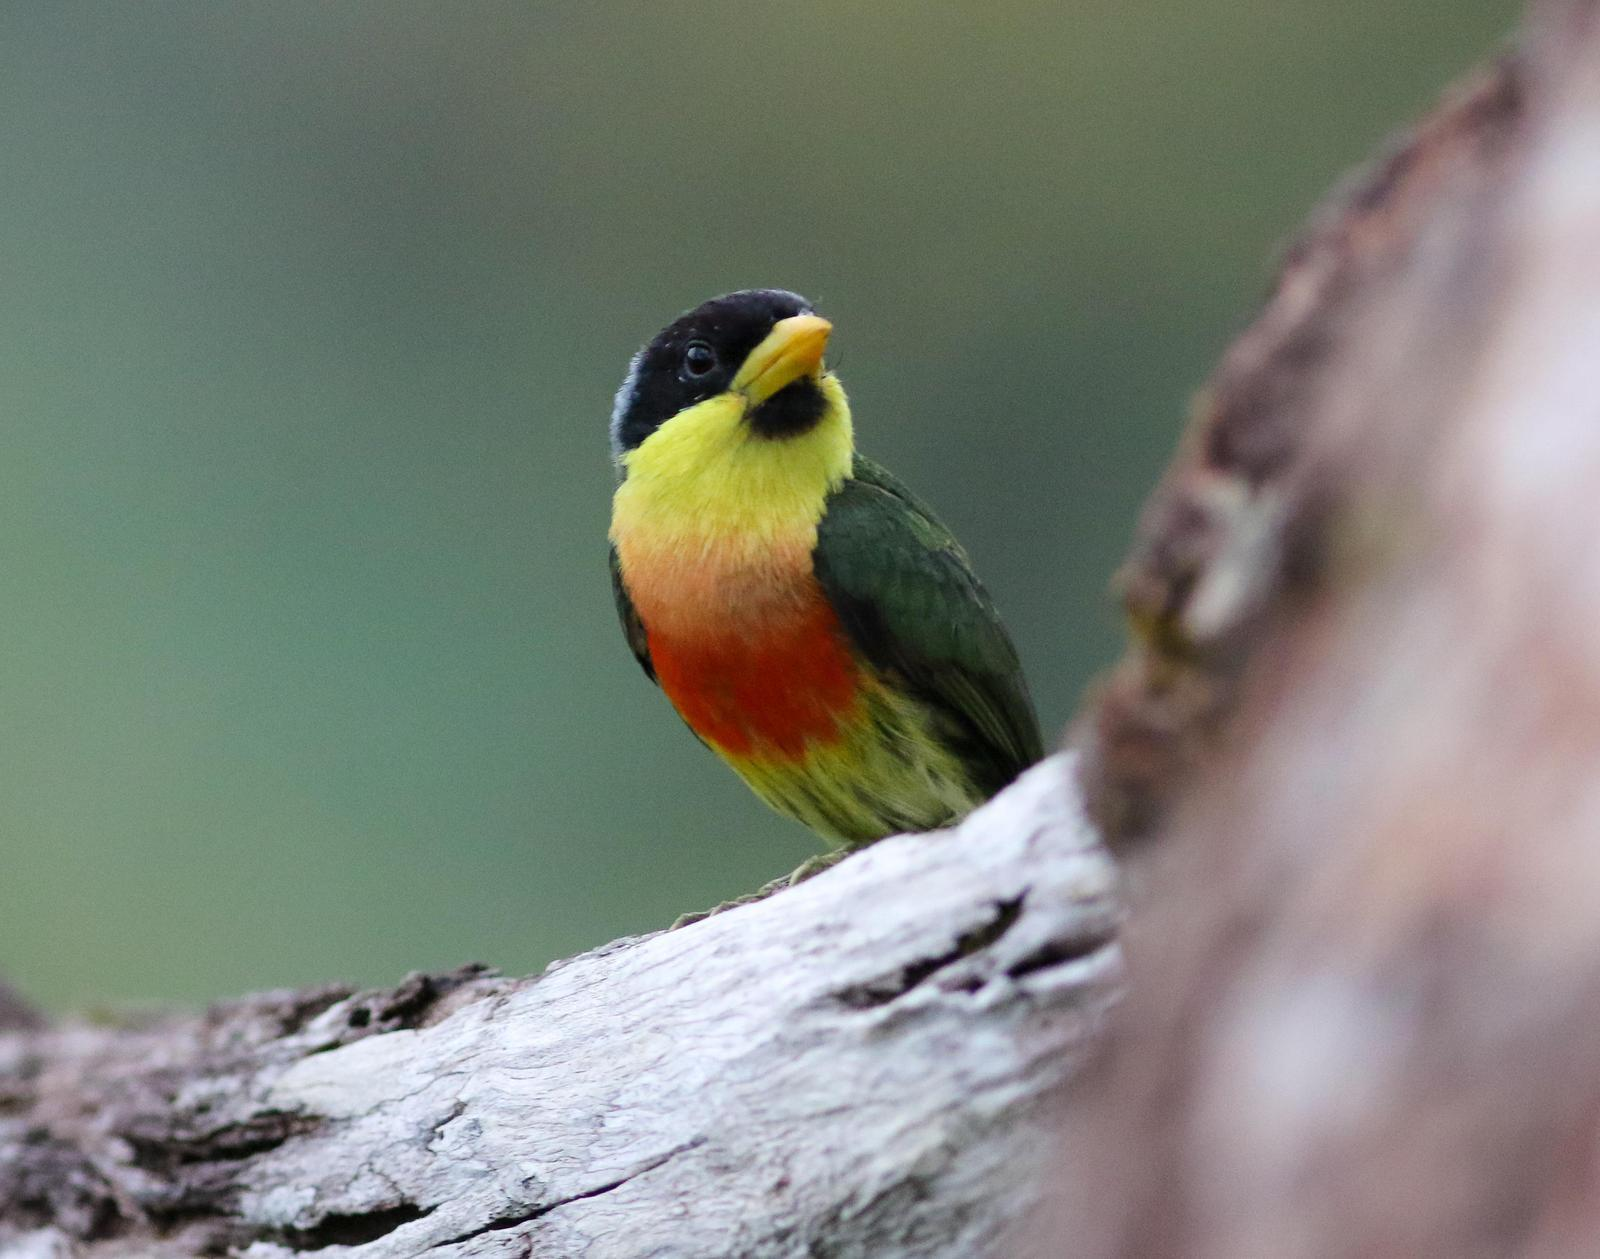 Lemon-throated Barbet (Lemon-throated) Photo by Leonardo Garrigues